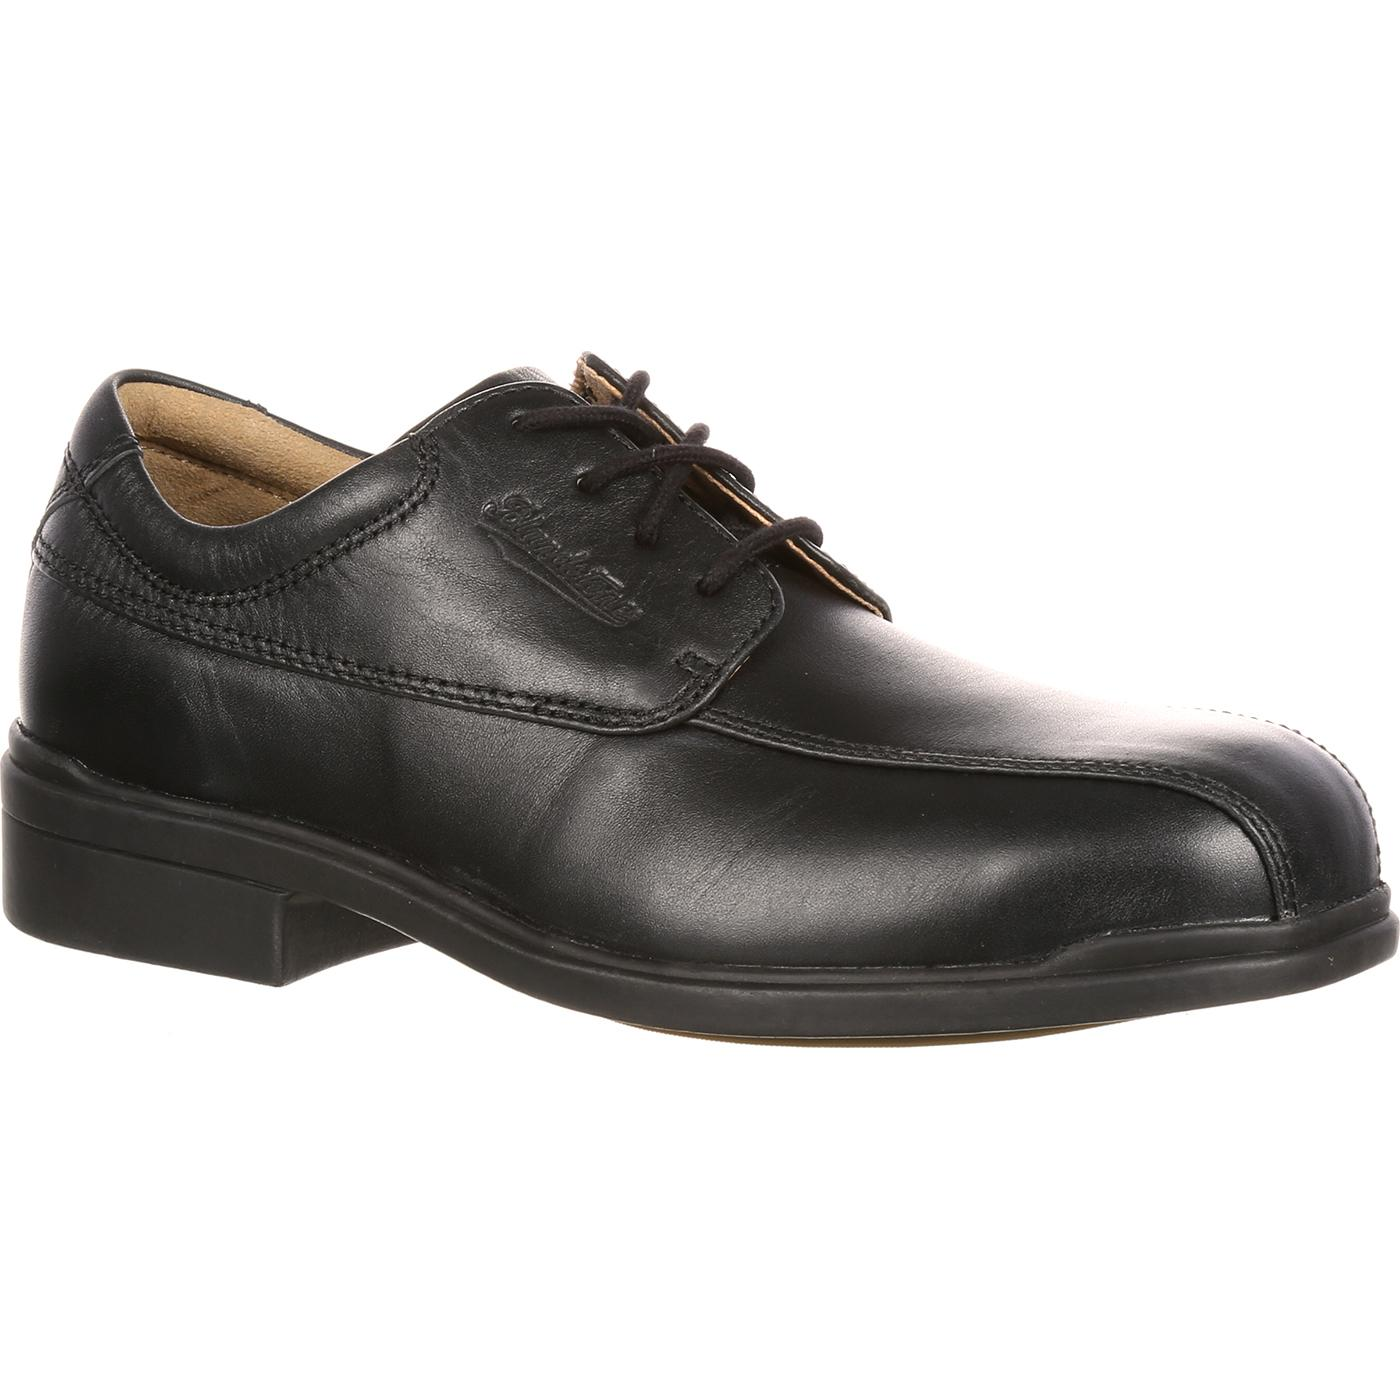 Blundstone Executive Steel Toe Dress Oxford Work Shoe, #BLU780